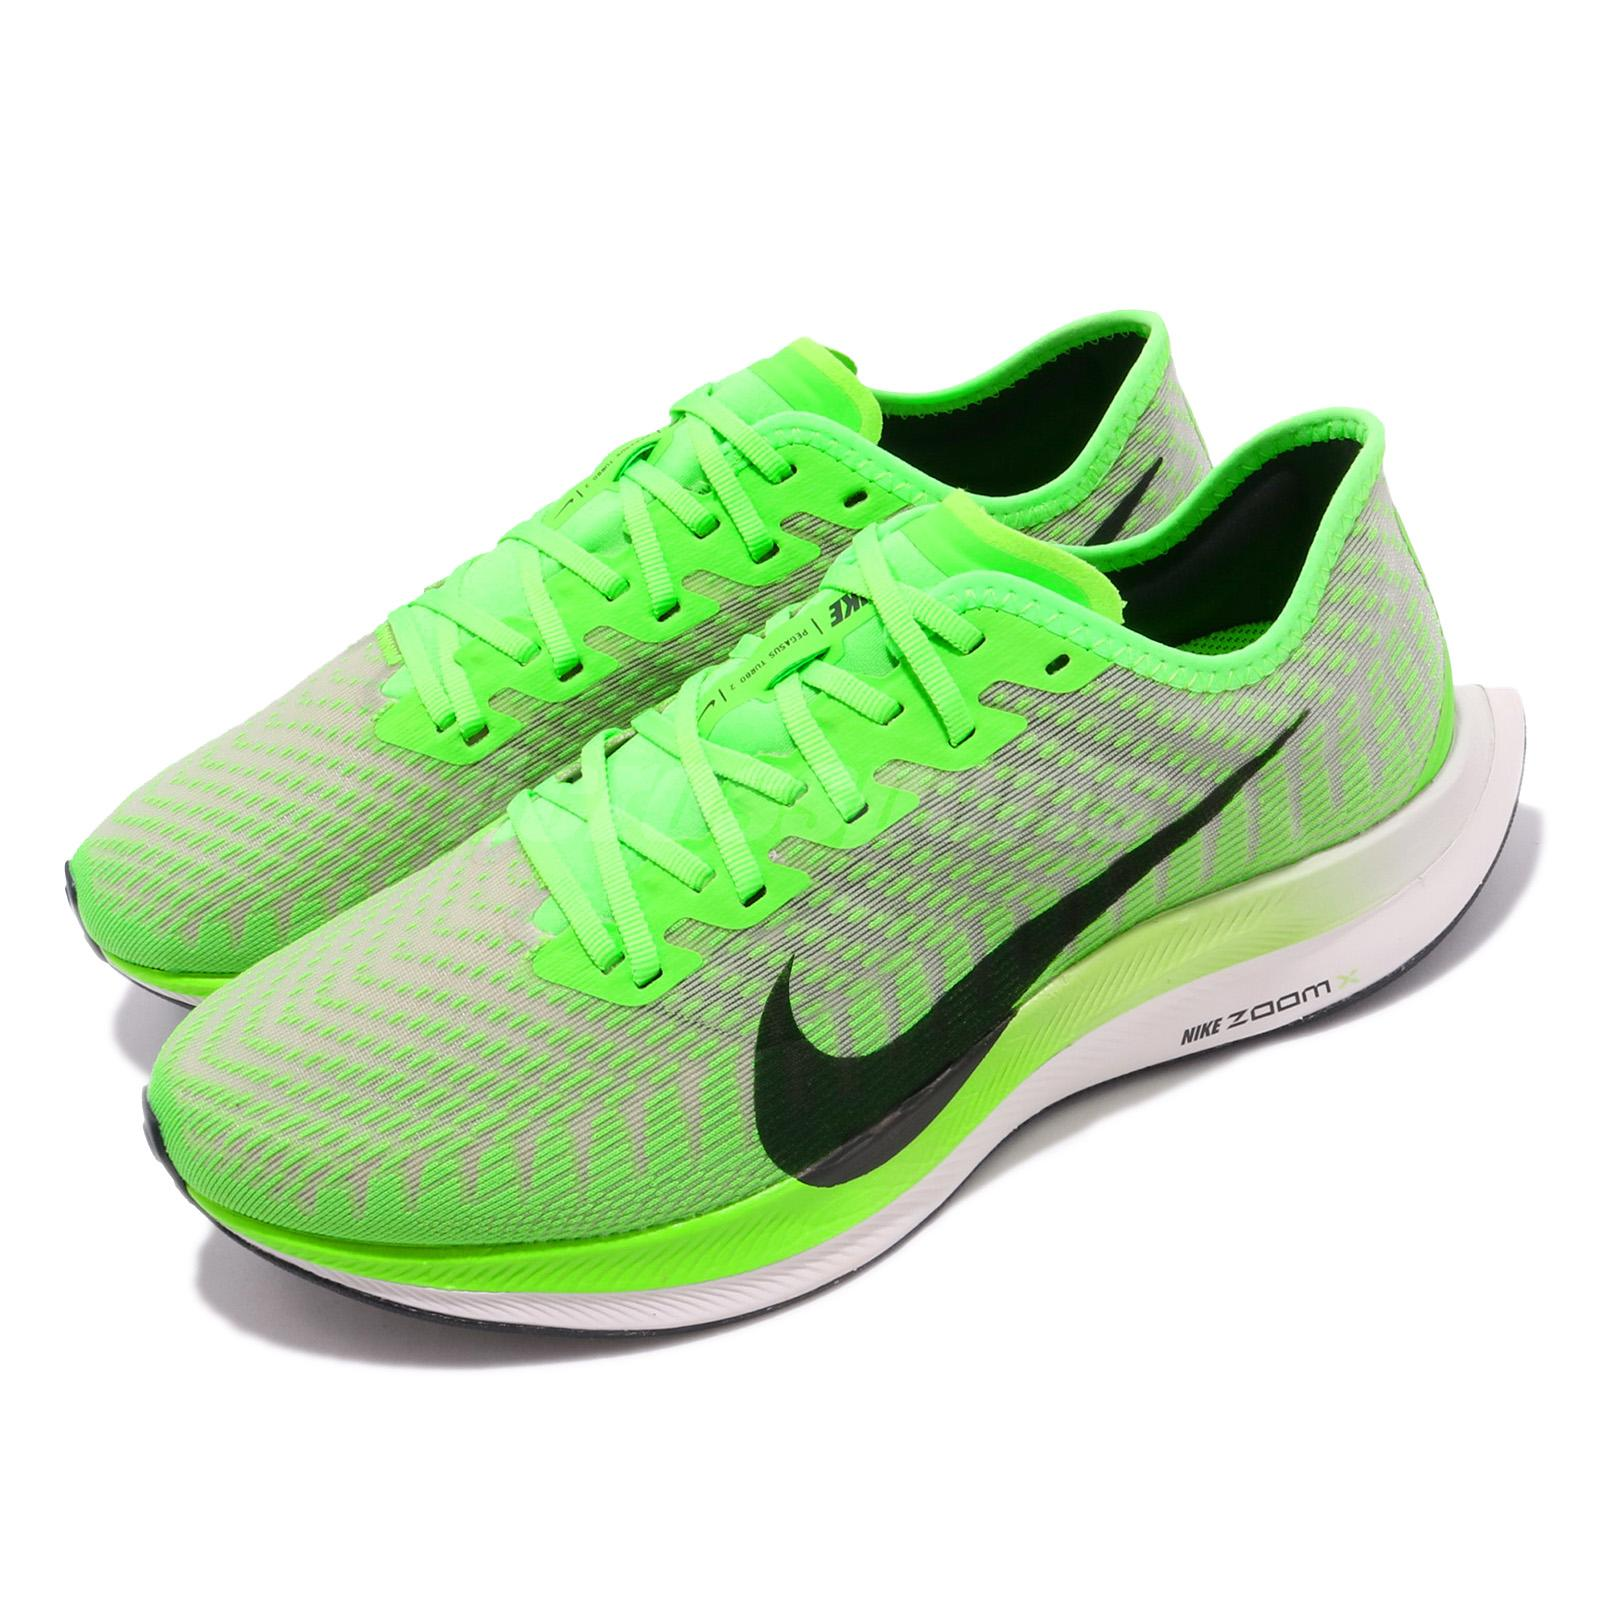 Details about Nike Zoom Pegasus Turbo 2 Electric Green Black Men Running  Shoes AT2863-300